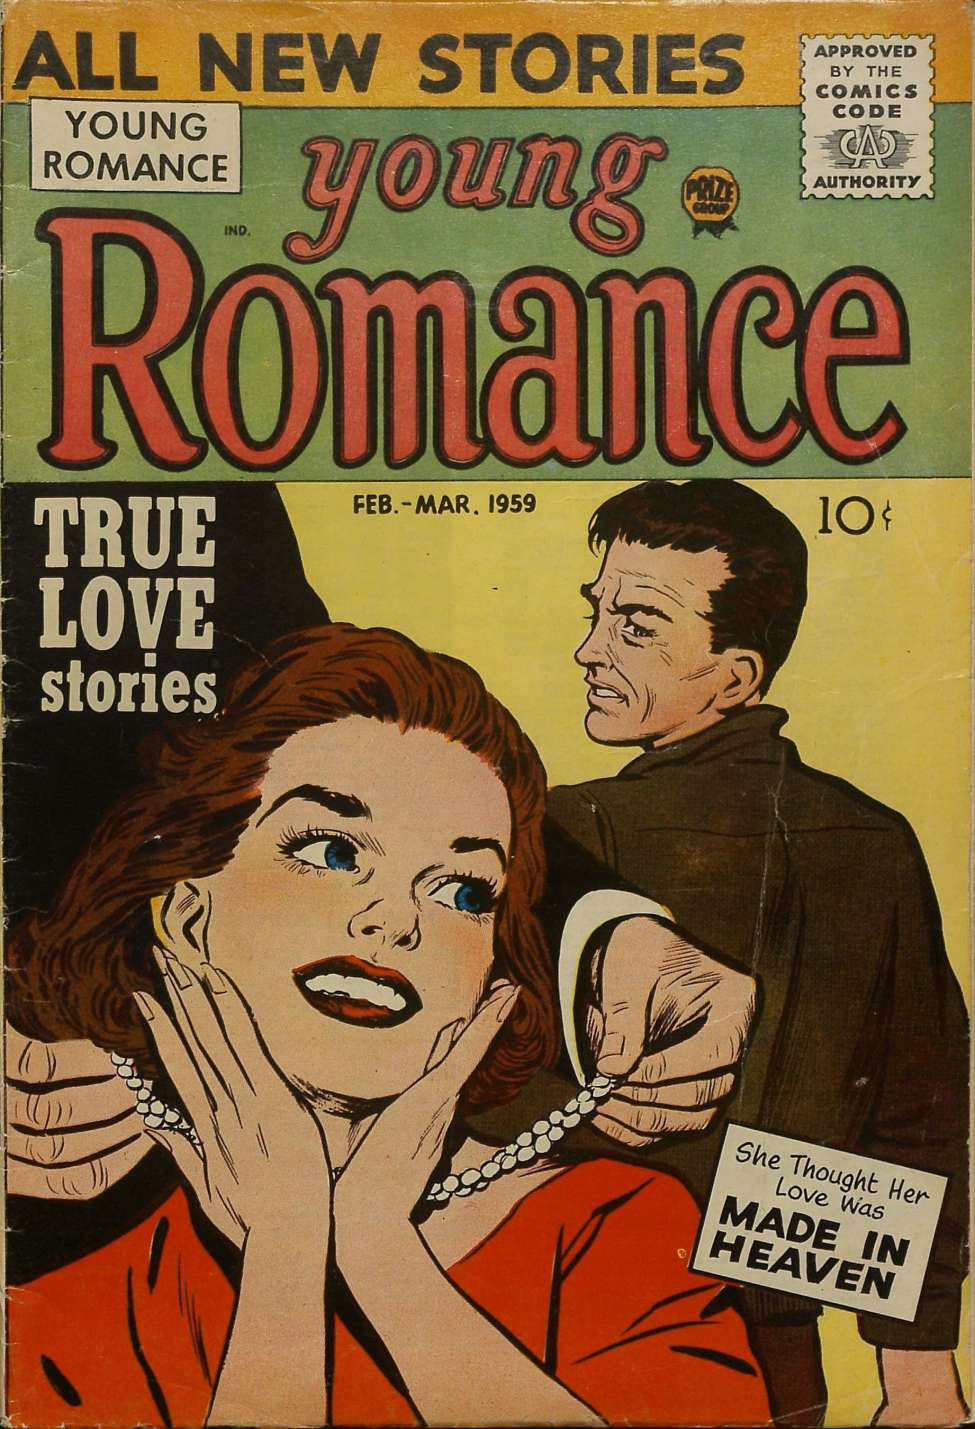 a history of the growth of romance comic books The 25 best comic books of 2017 by paste comics crew december 6, 2017 the best comic artists of 2017 by steve foxe december 22, 2017 85 of the best horror comics (updated) by steve foxe, sean.